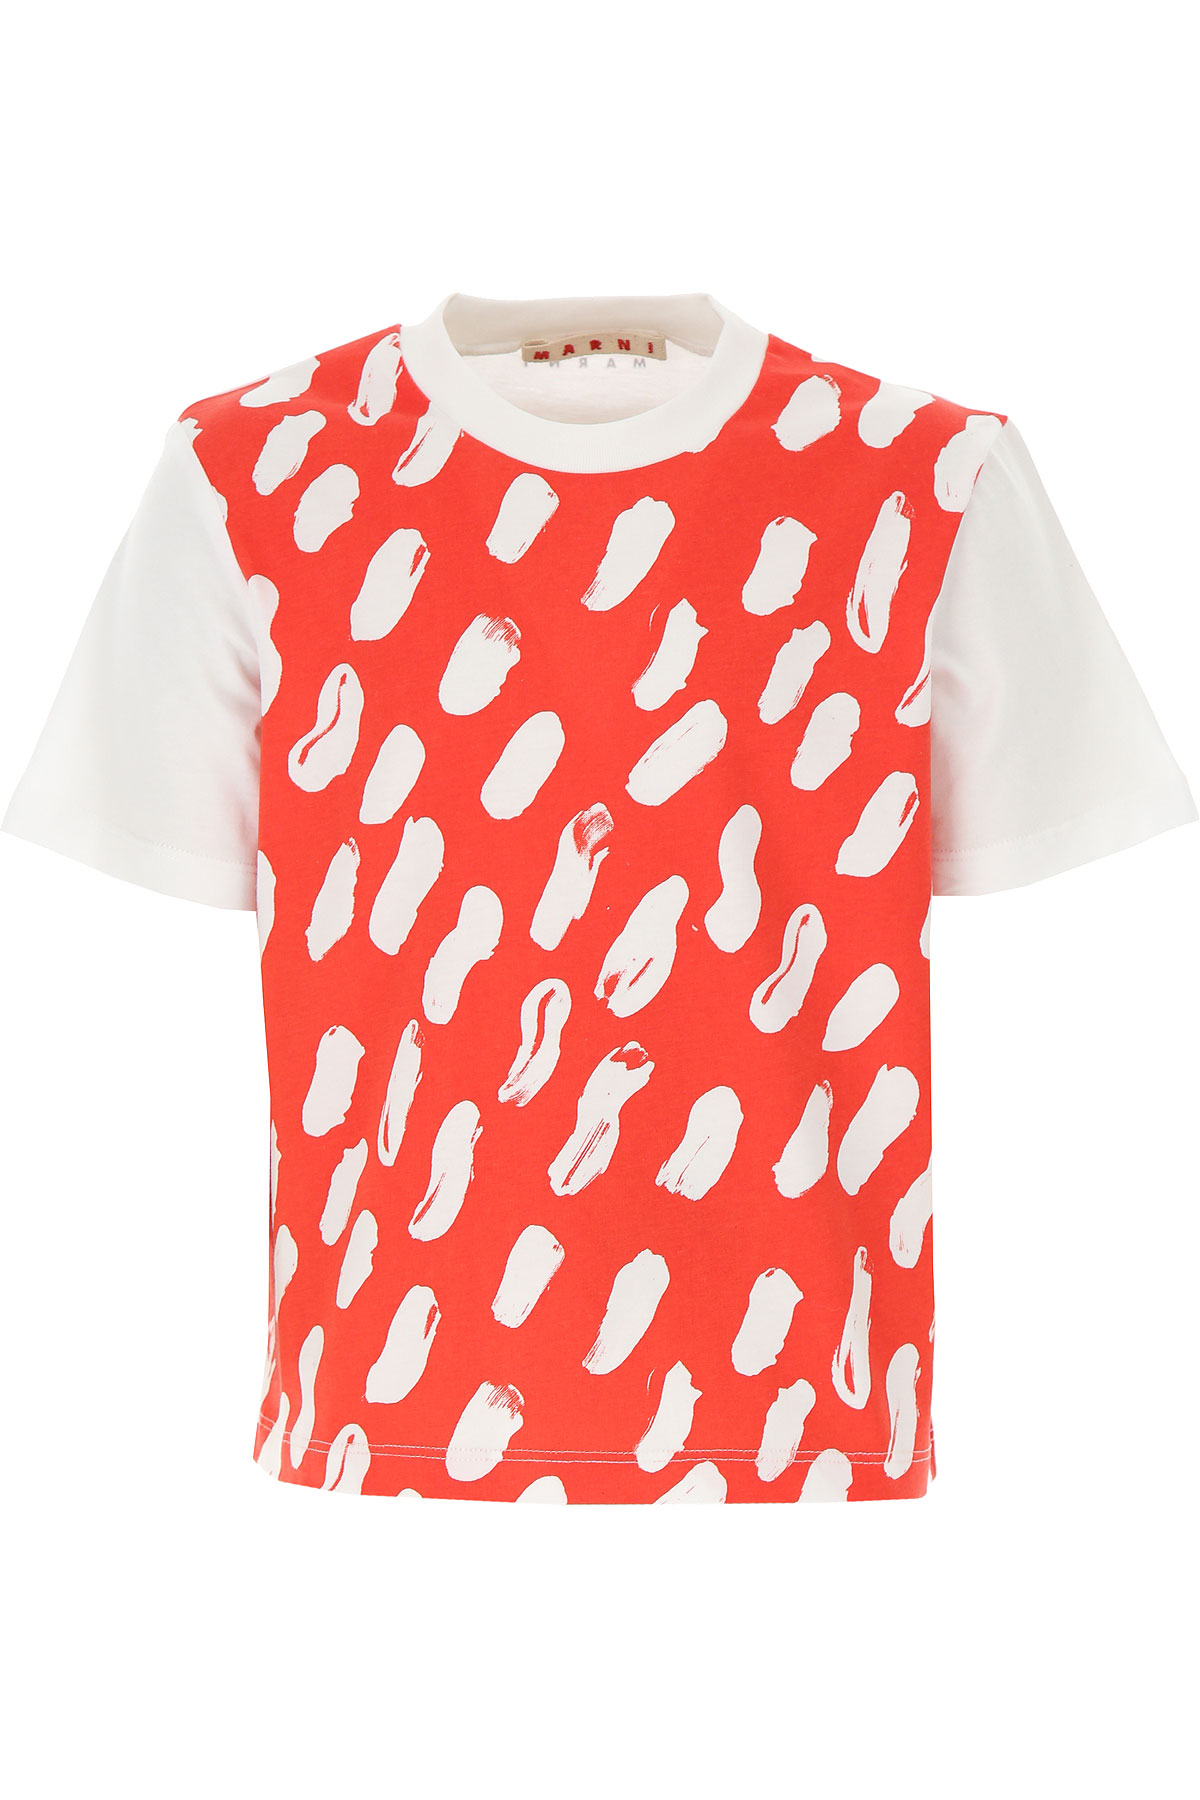 Marni Kids T-Shirt for Girls On Sale, Red, Cotton, 2019, 10Y 12Y 6Y